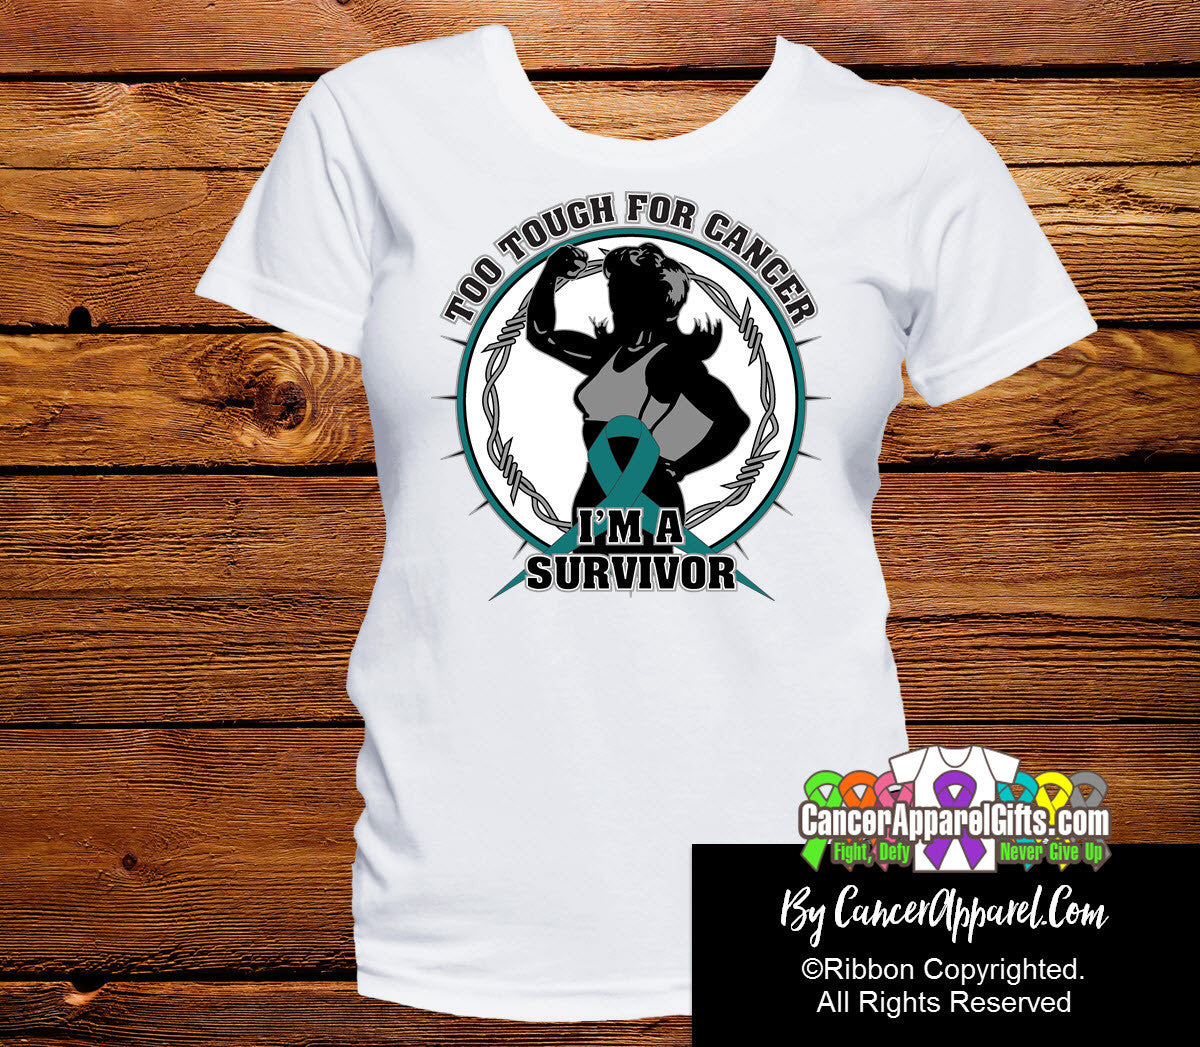 Too Tough For Ovarian Cancer Shirts